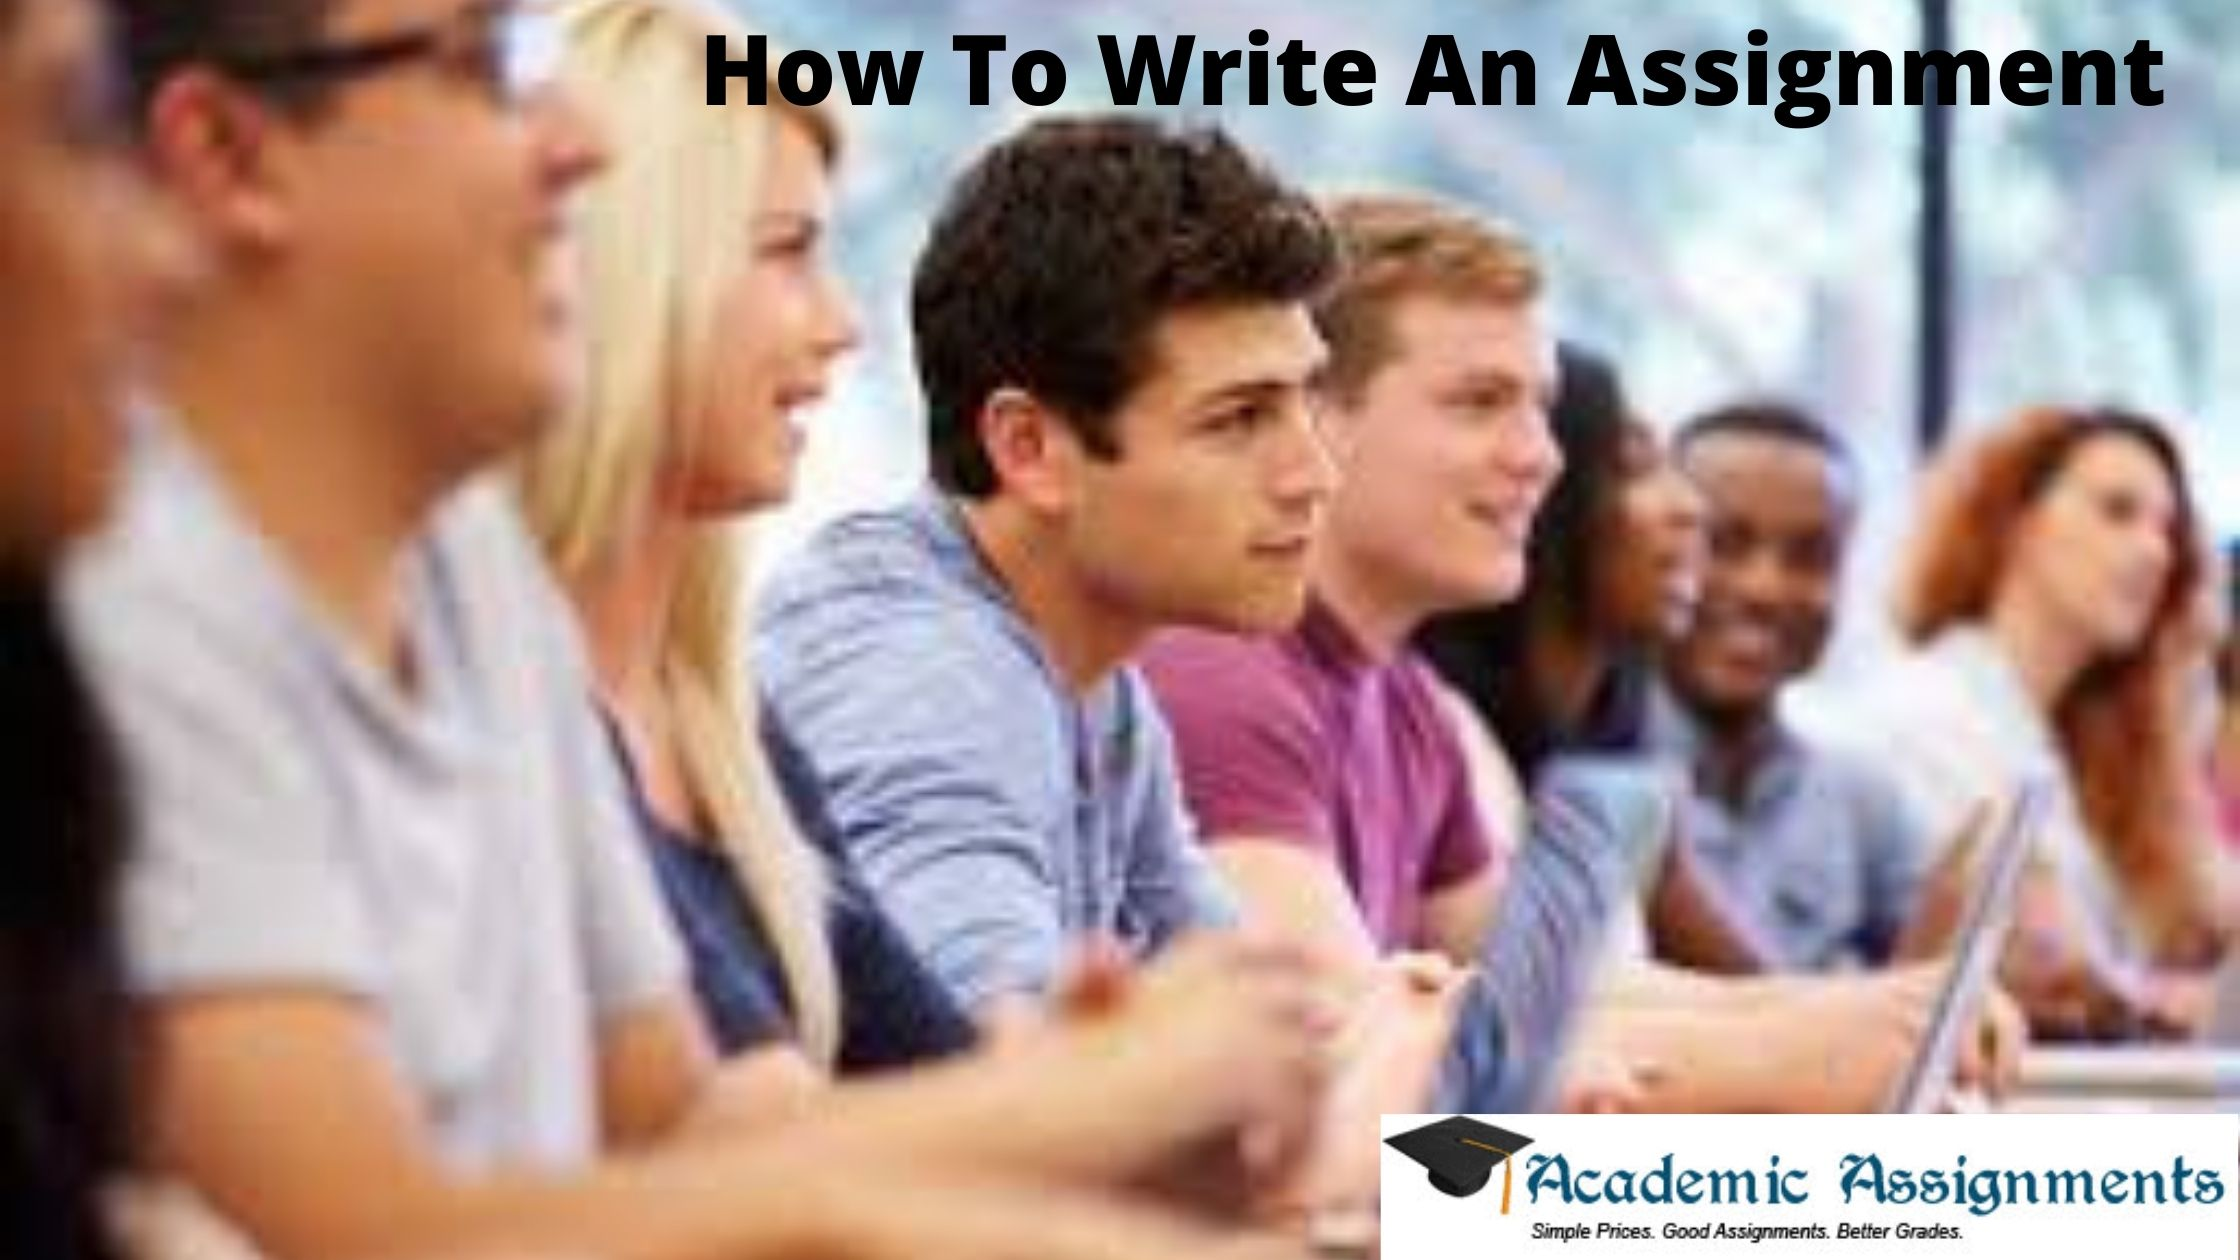 .how to write an assignment